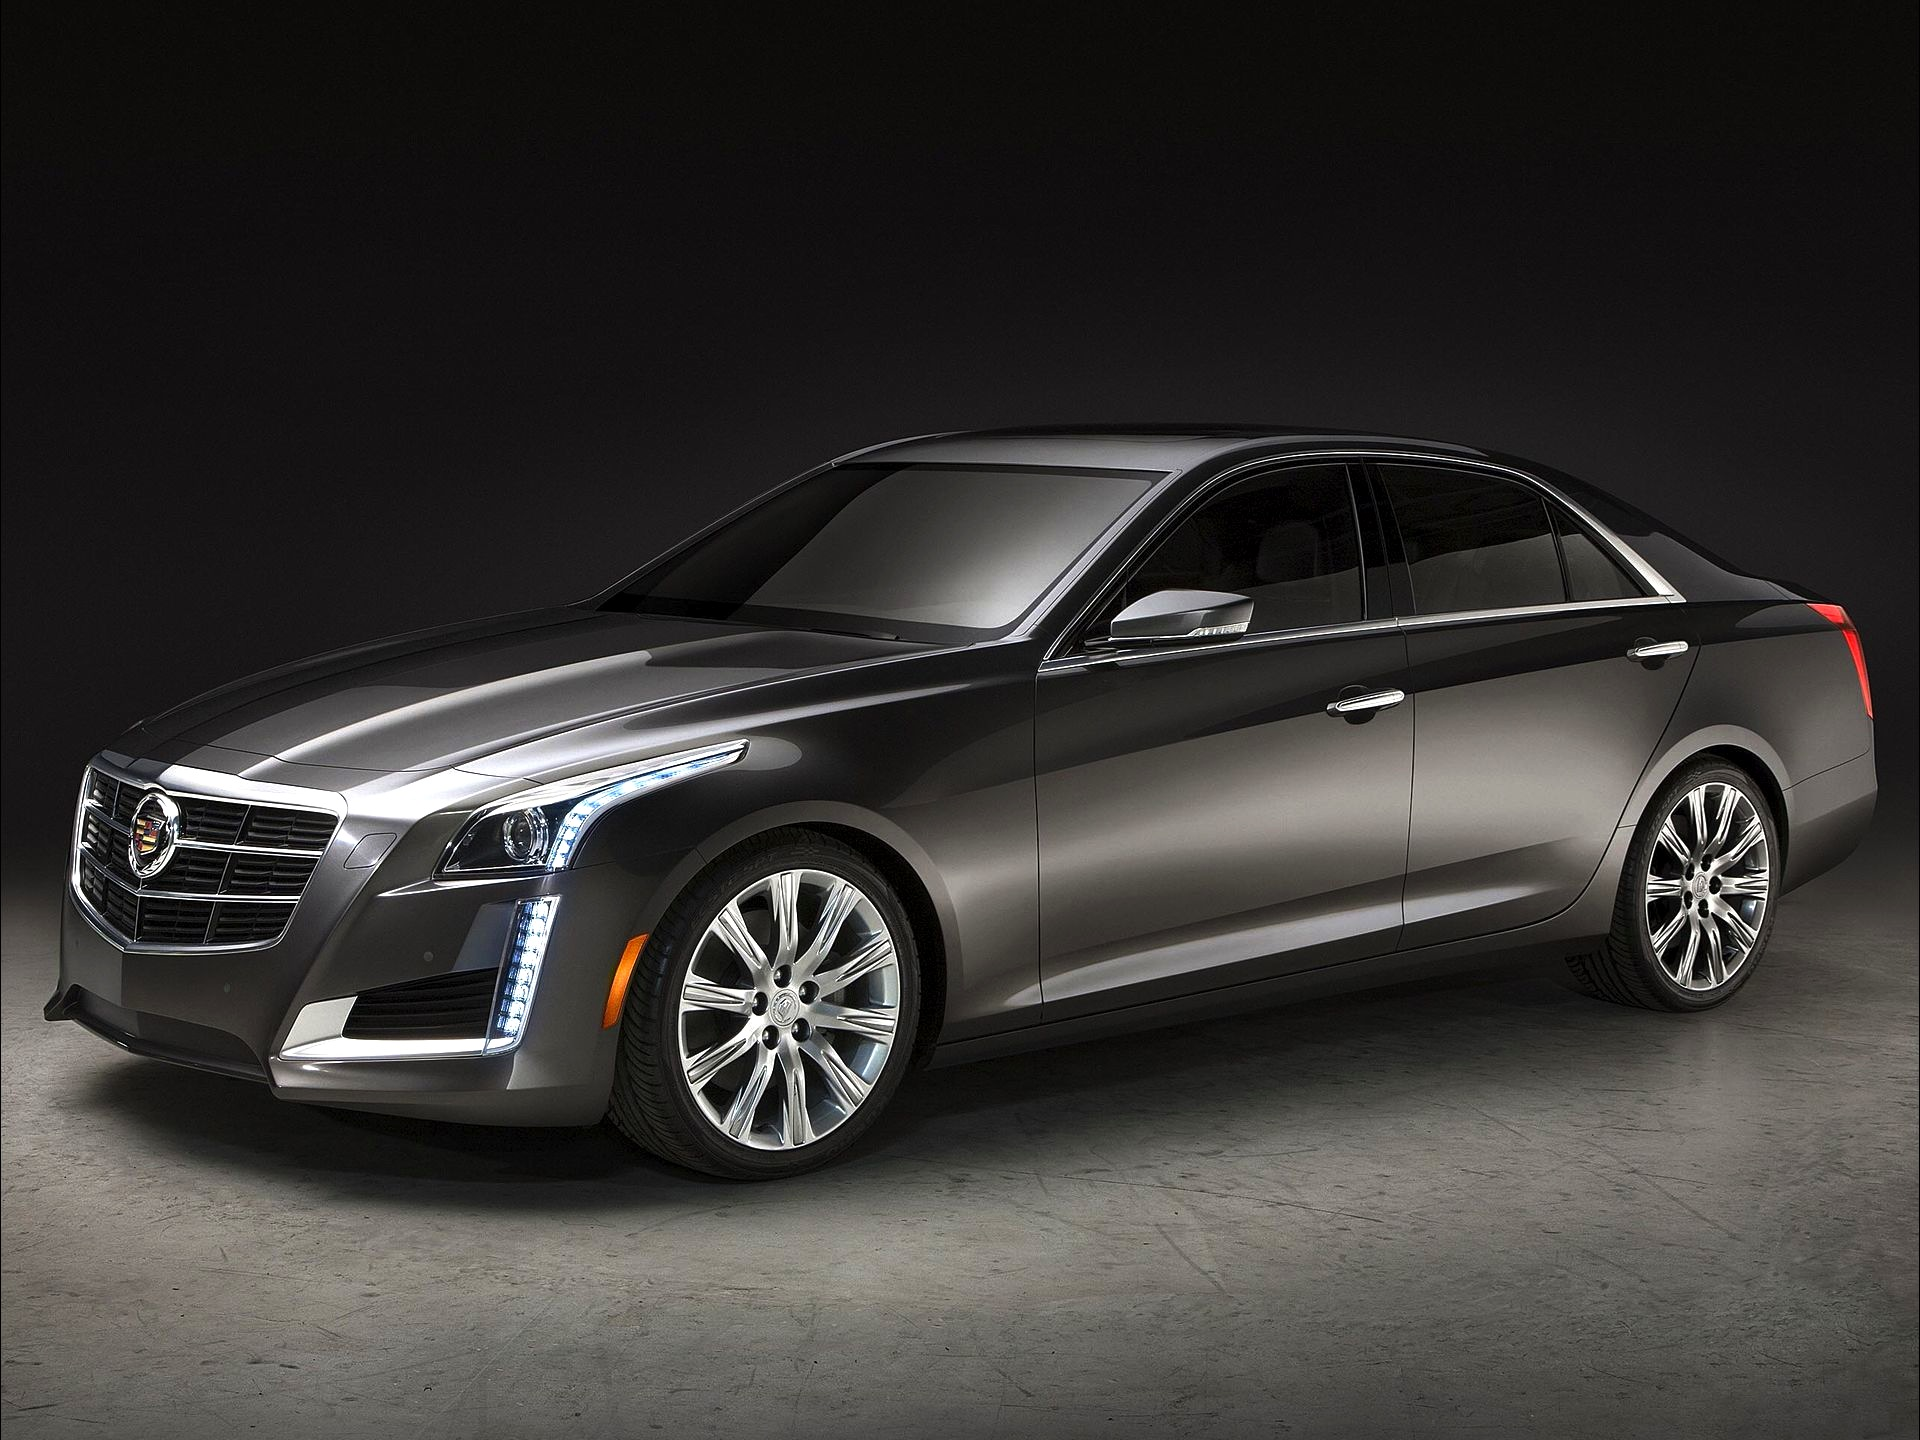 The Cadillac CTS V was unveiled at the 2014 New York Auto Show that Wallpapers HD